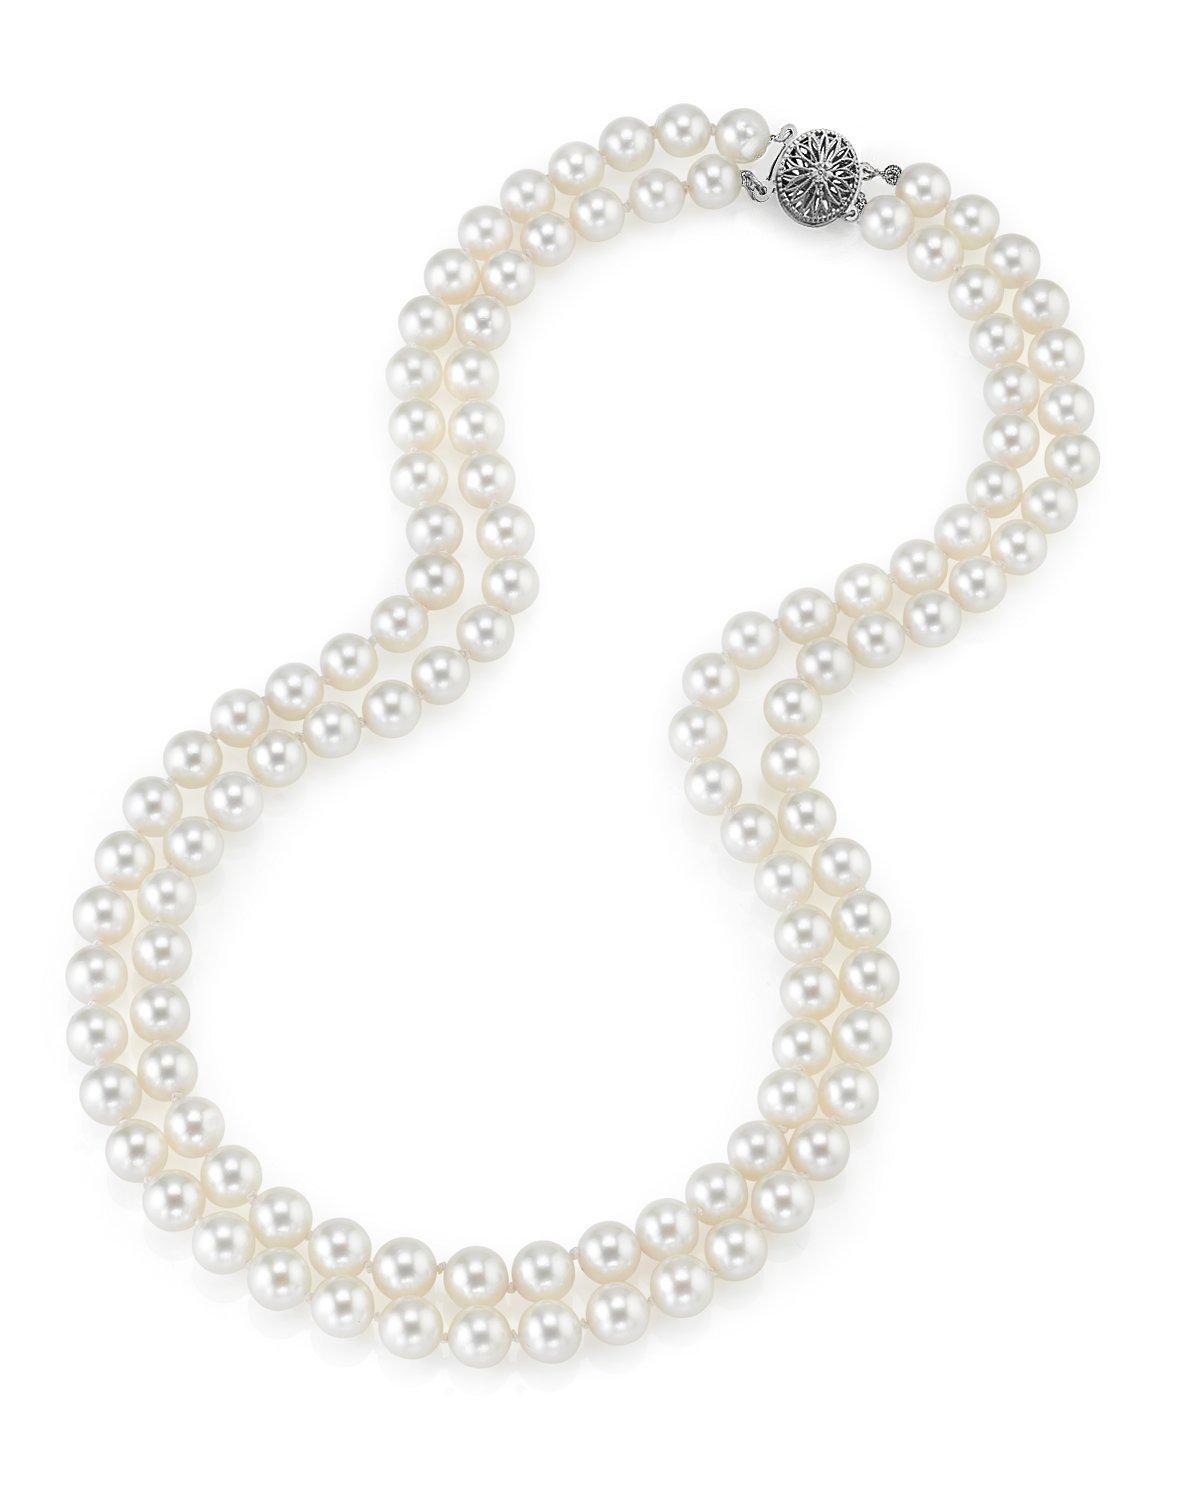 14K Gold Japanese Akoya White Cultured Pearl Double Strand Necklace - AAA Quality, 18-19'' Necklace Length